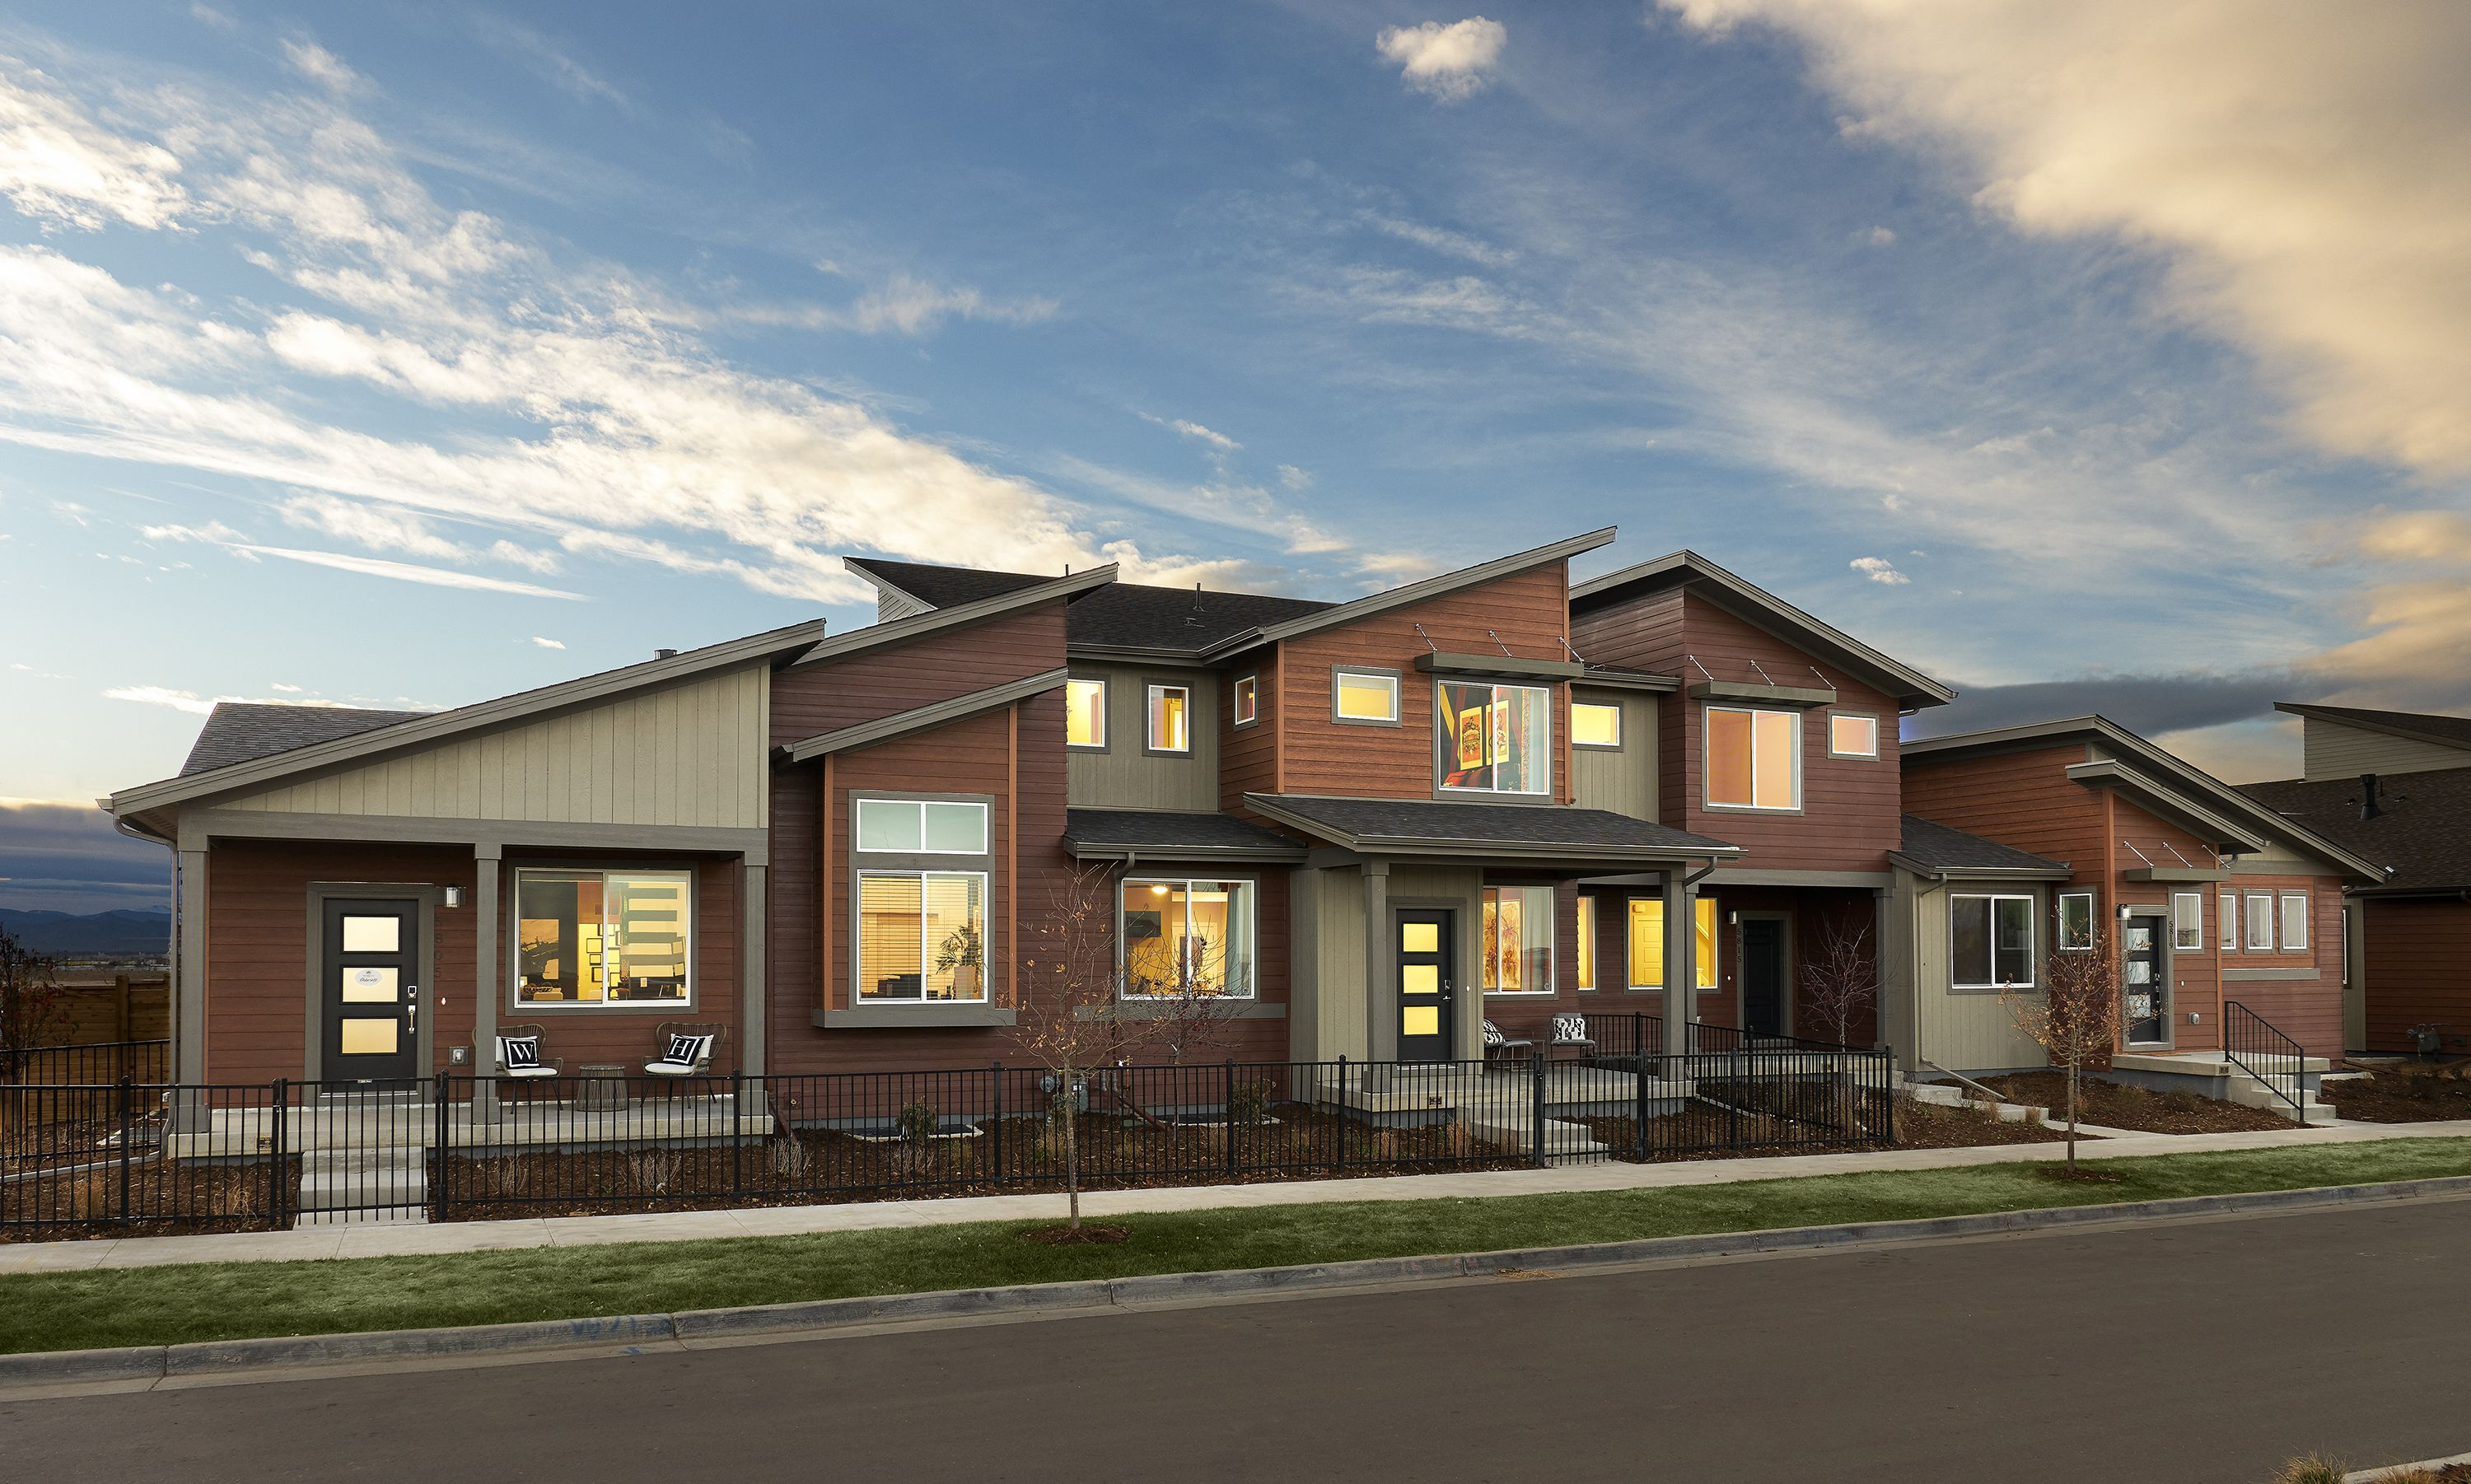 Prospect Townhomes New Townhomes For Sale In Denver Townhouse New Home Communities Home